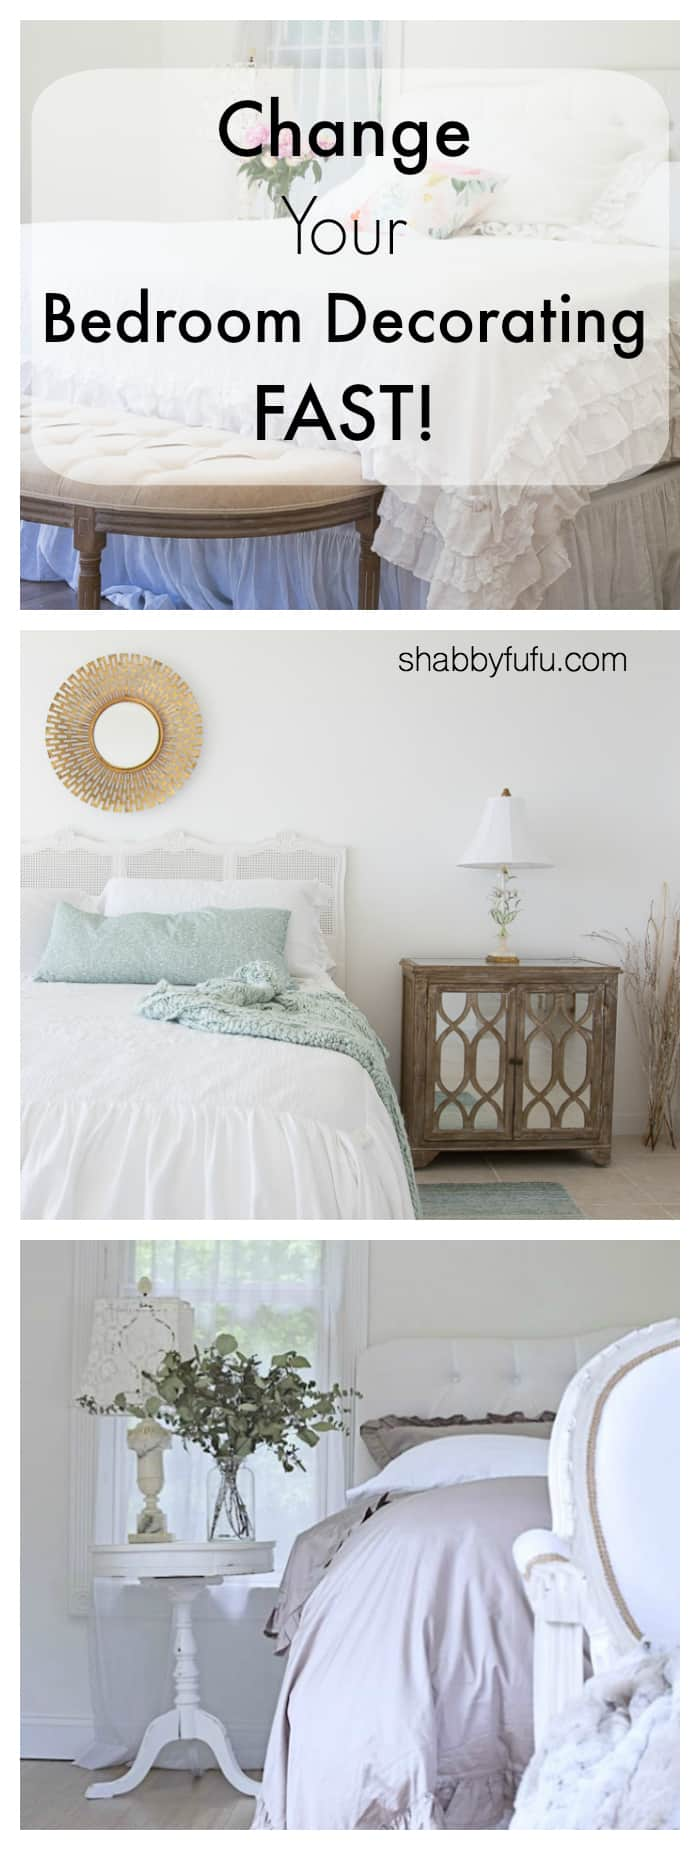 How to change your bedroom decorating fast with tips for moving the placement of your bed, changing the linens, headboard selection and more